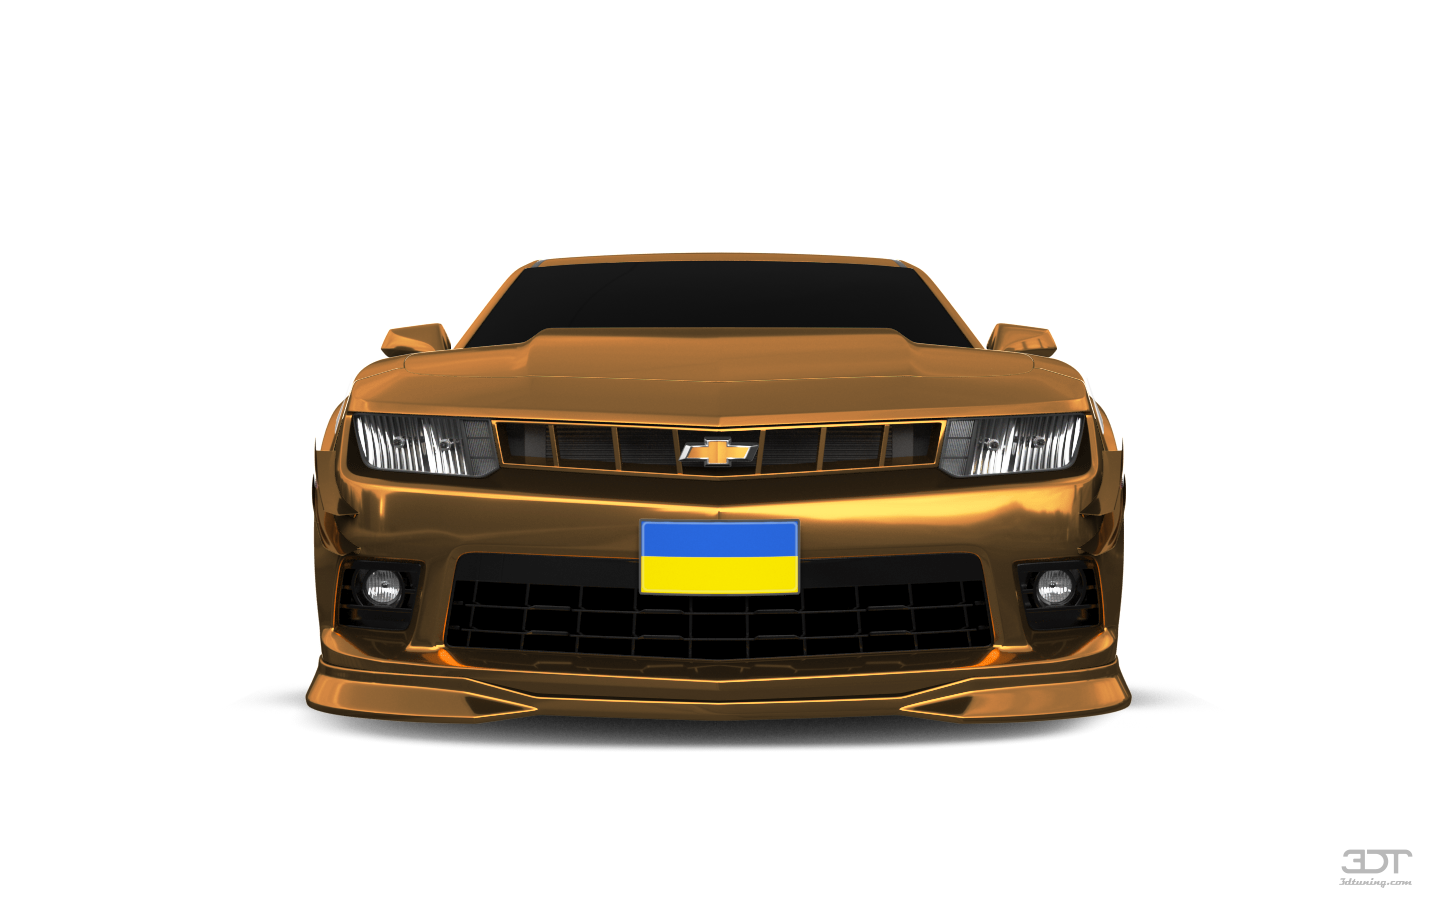 Chevrolet Camaro 2 Door Coupe 2014